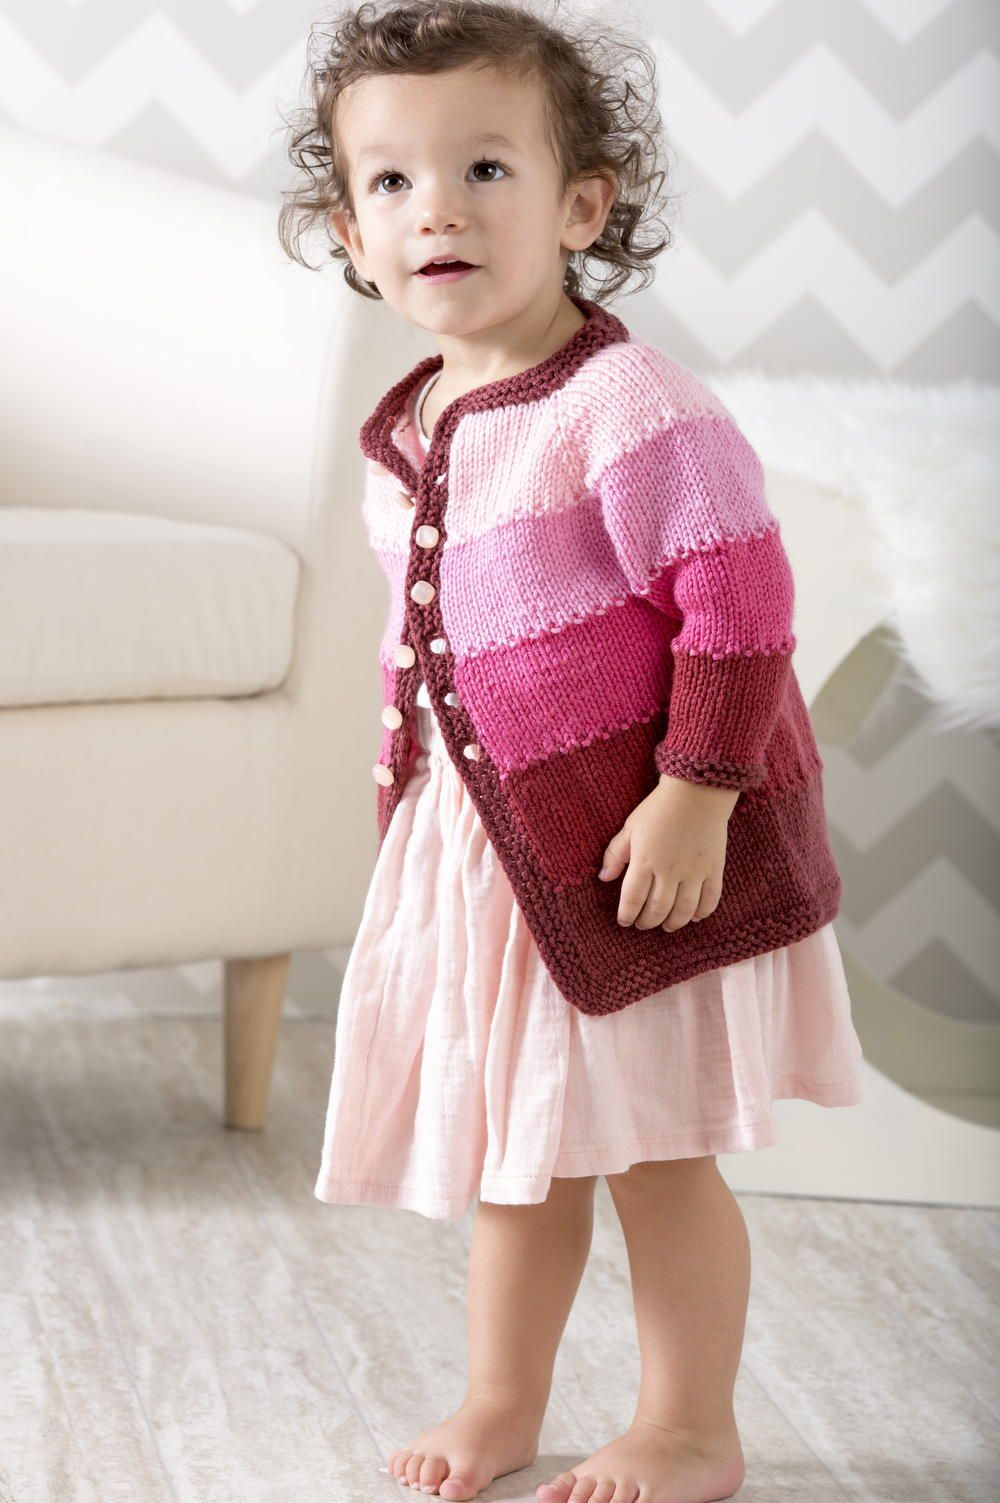 Ombre Cardigan | Ombre, Knit cardigan pattern and Knitted baby cardigan